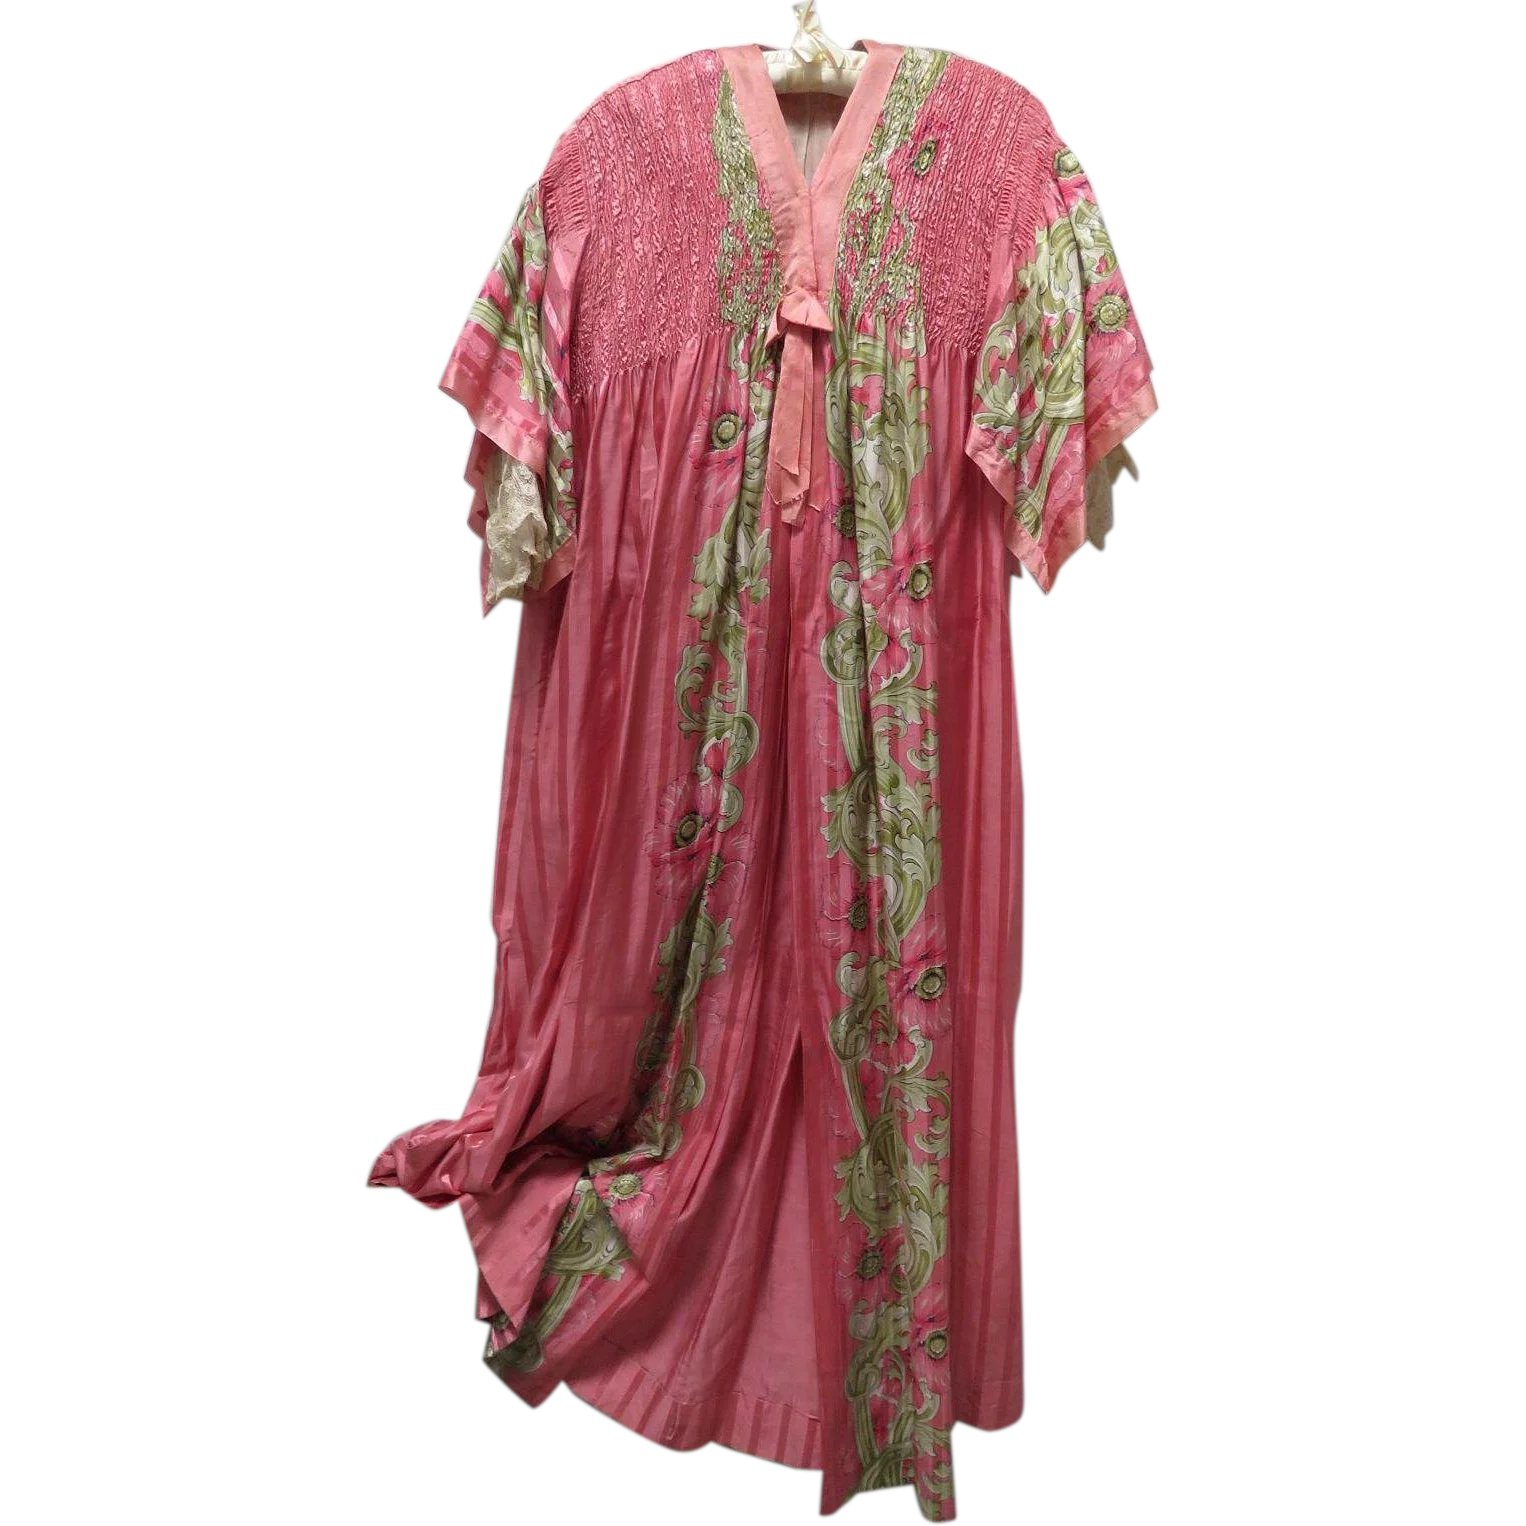 e17488b0804 1920s Peignoir Dressing Gown Robe Silk and Lace   Maiden Memories ...